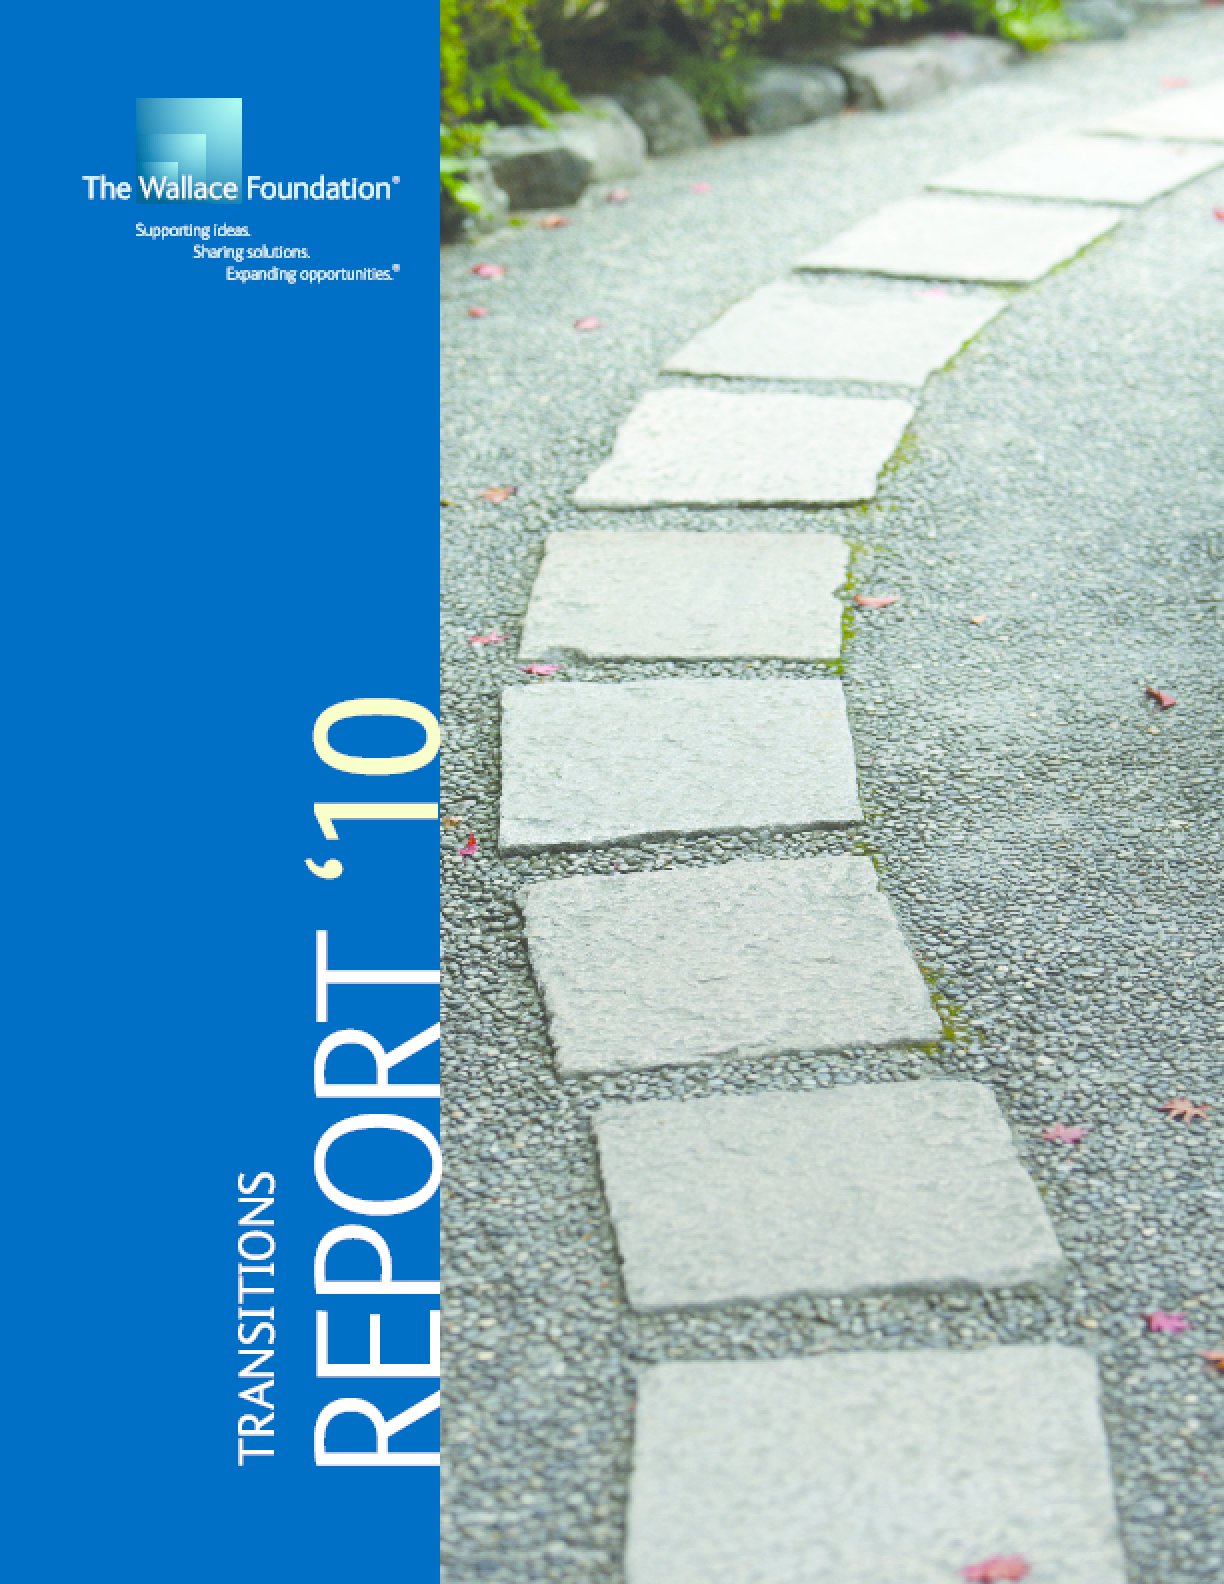 Wallace Foundation 2010 Annual Report